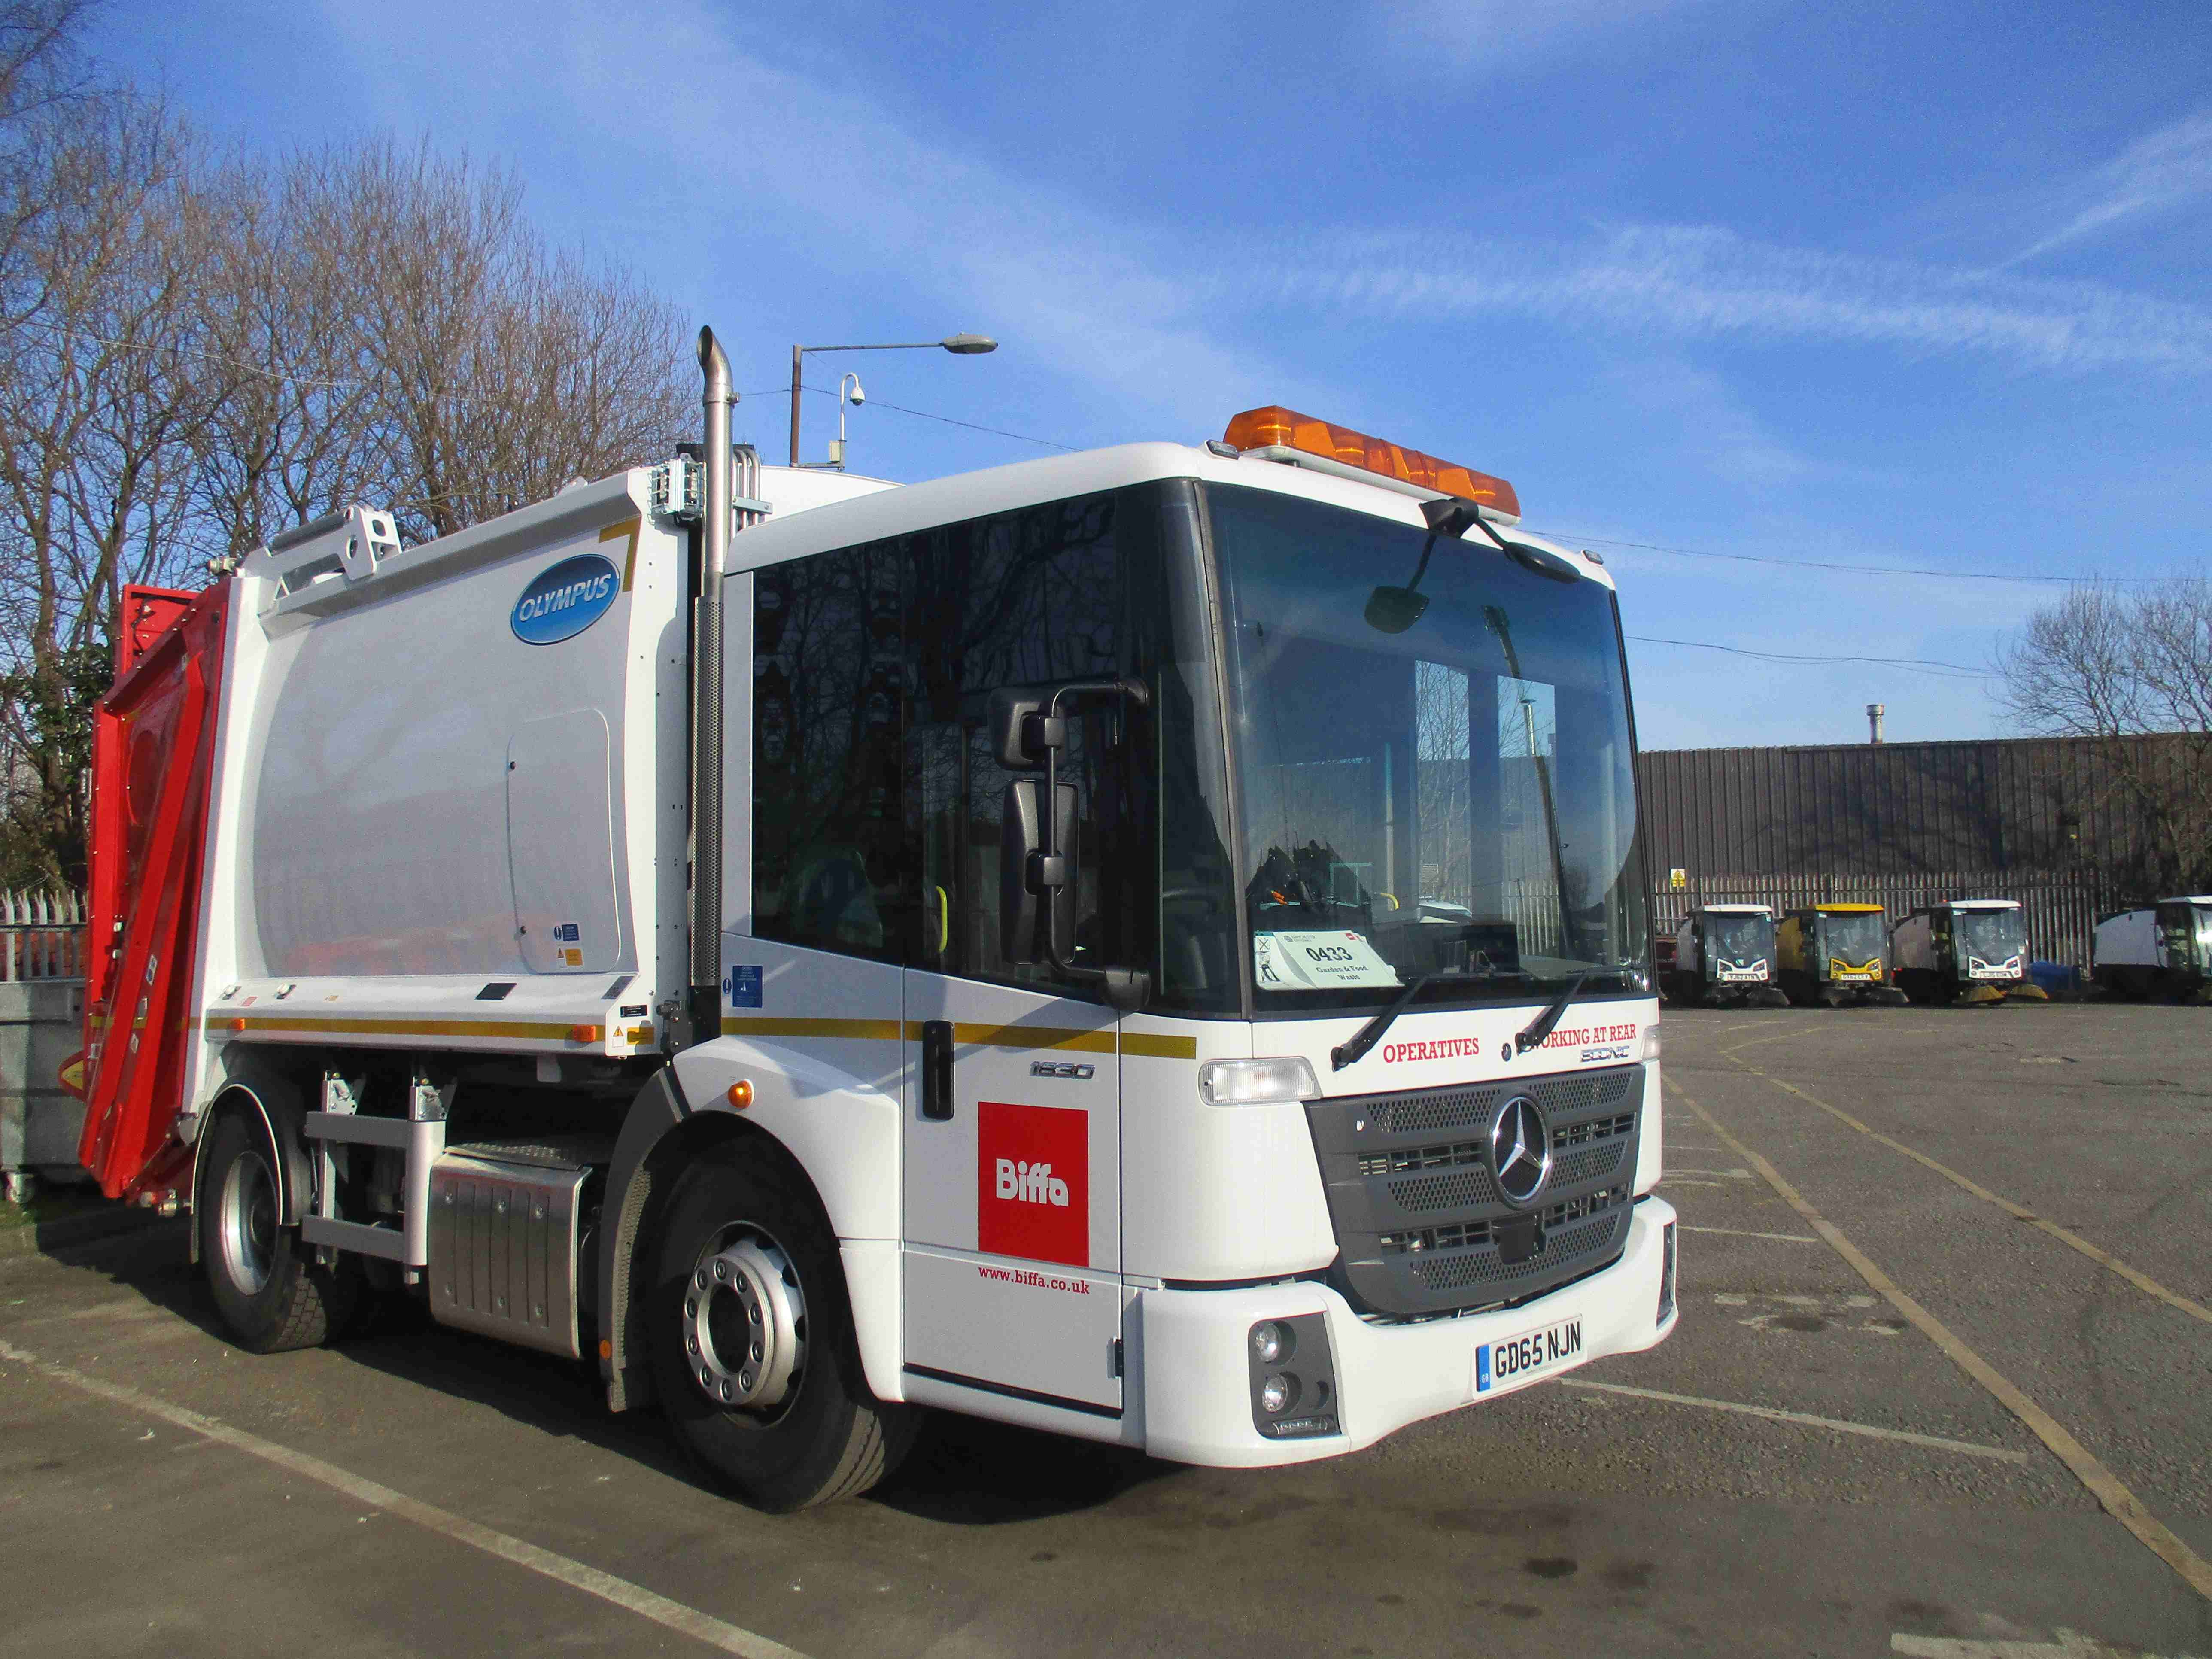 Biffa has taken delivery of several new vehicles to upgrade its Manchester waste collection fleet